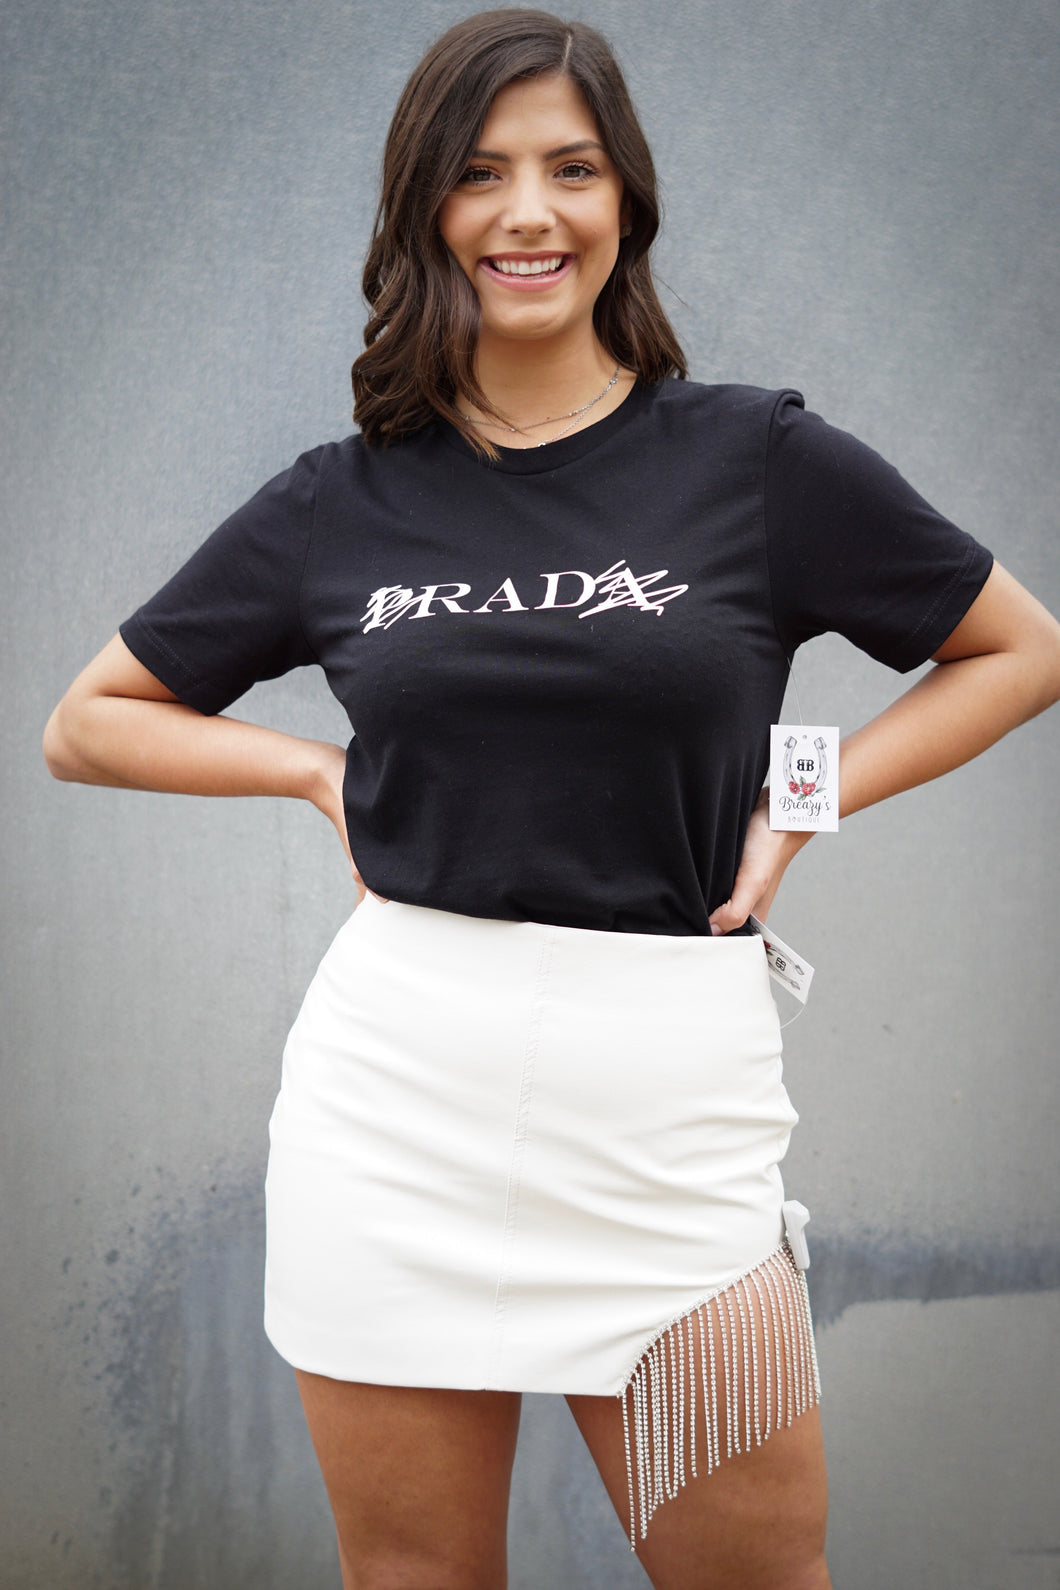 pRADa Graphic Tee